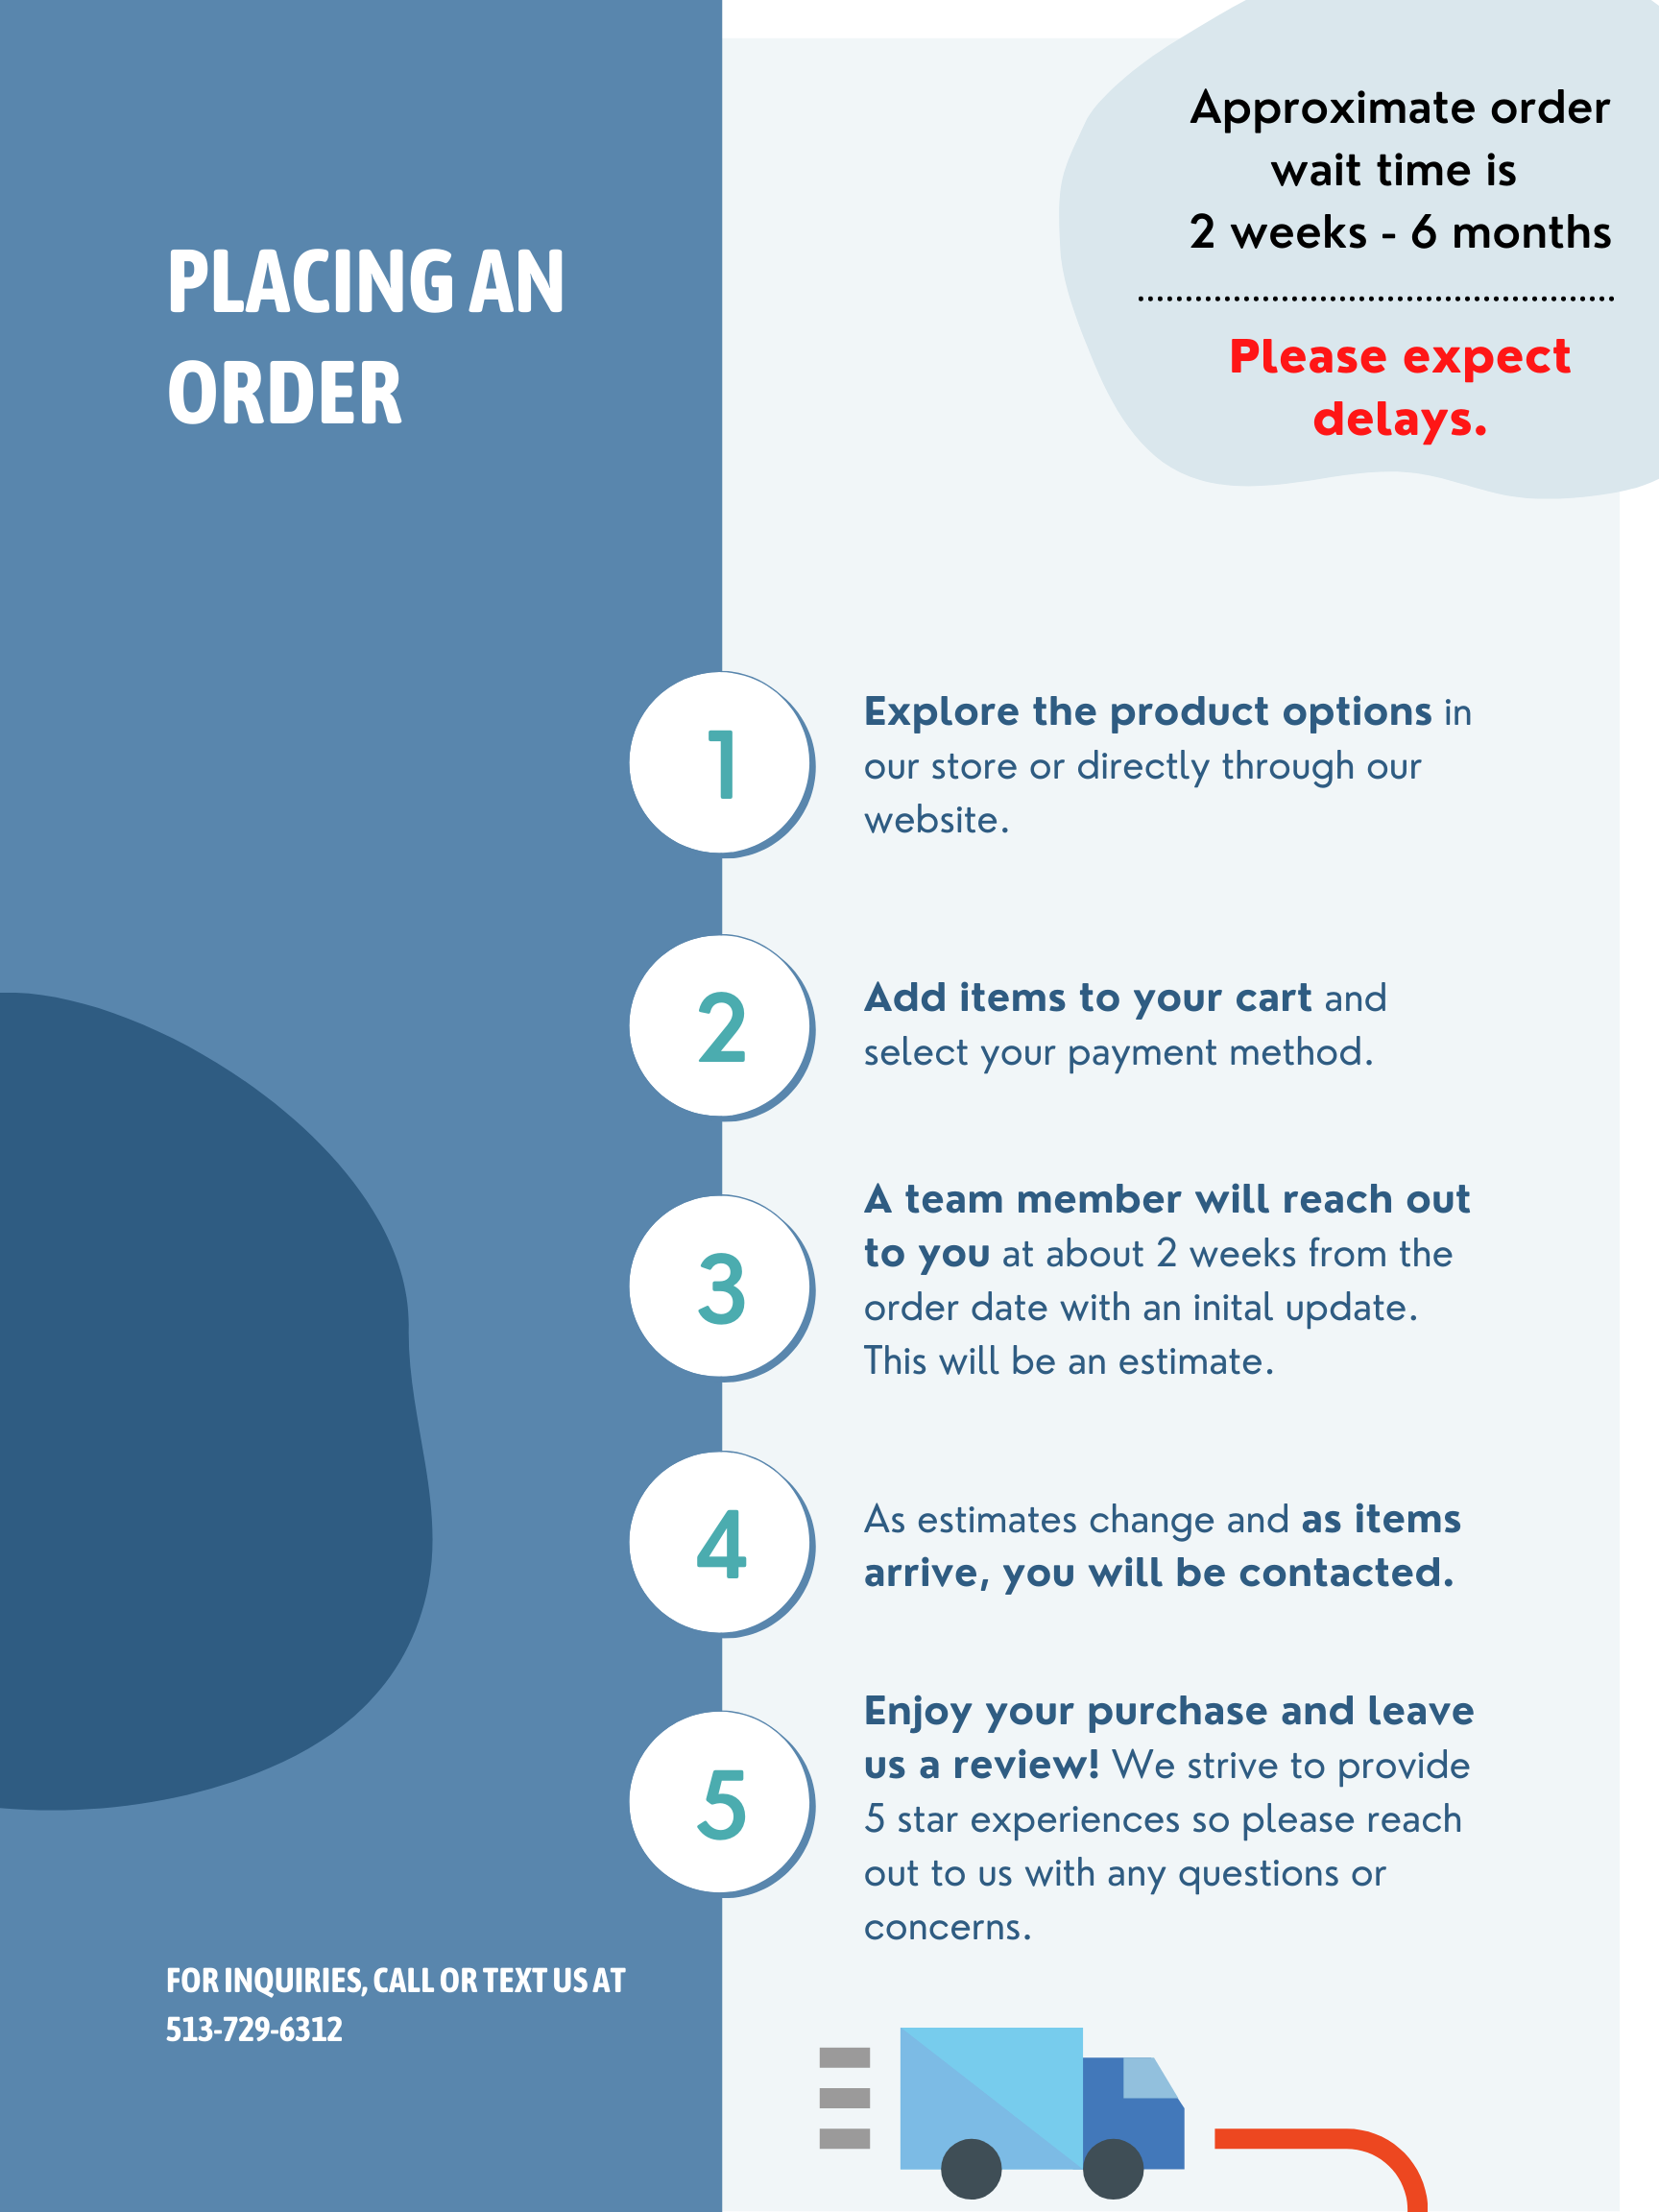 ordering-process-2wks-to-6-mons.png